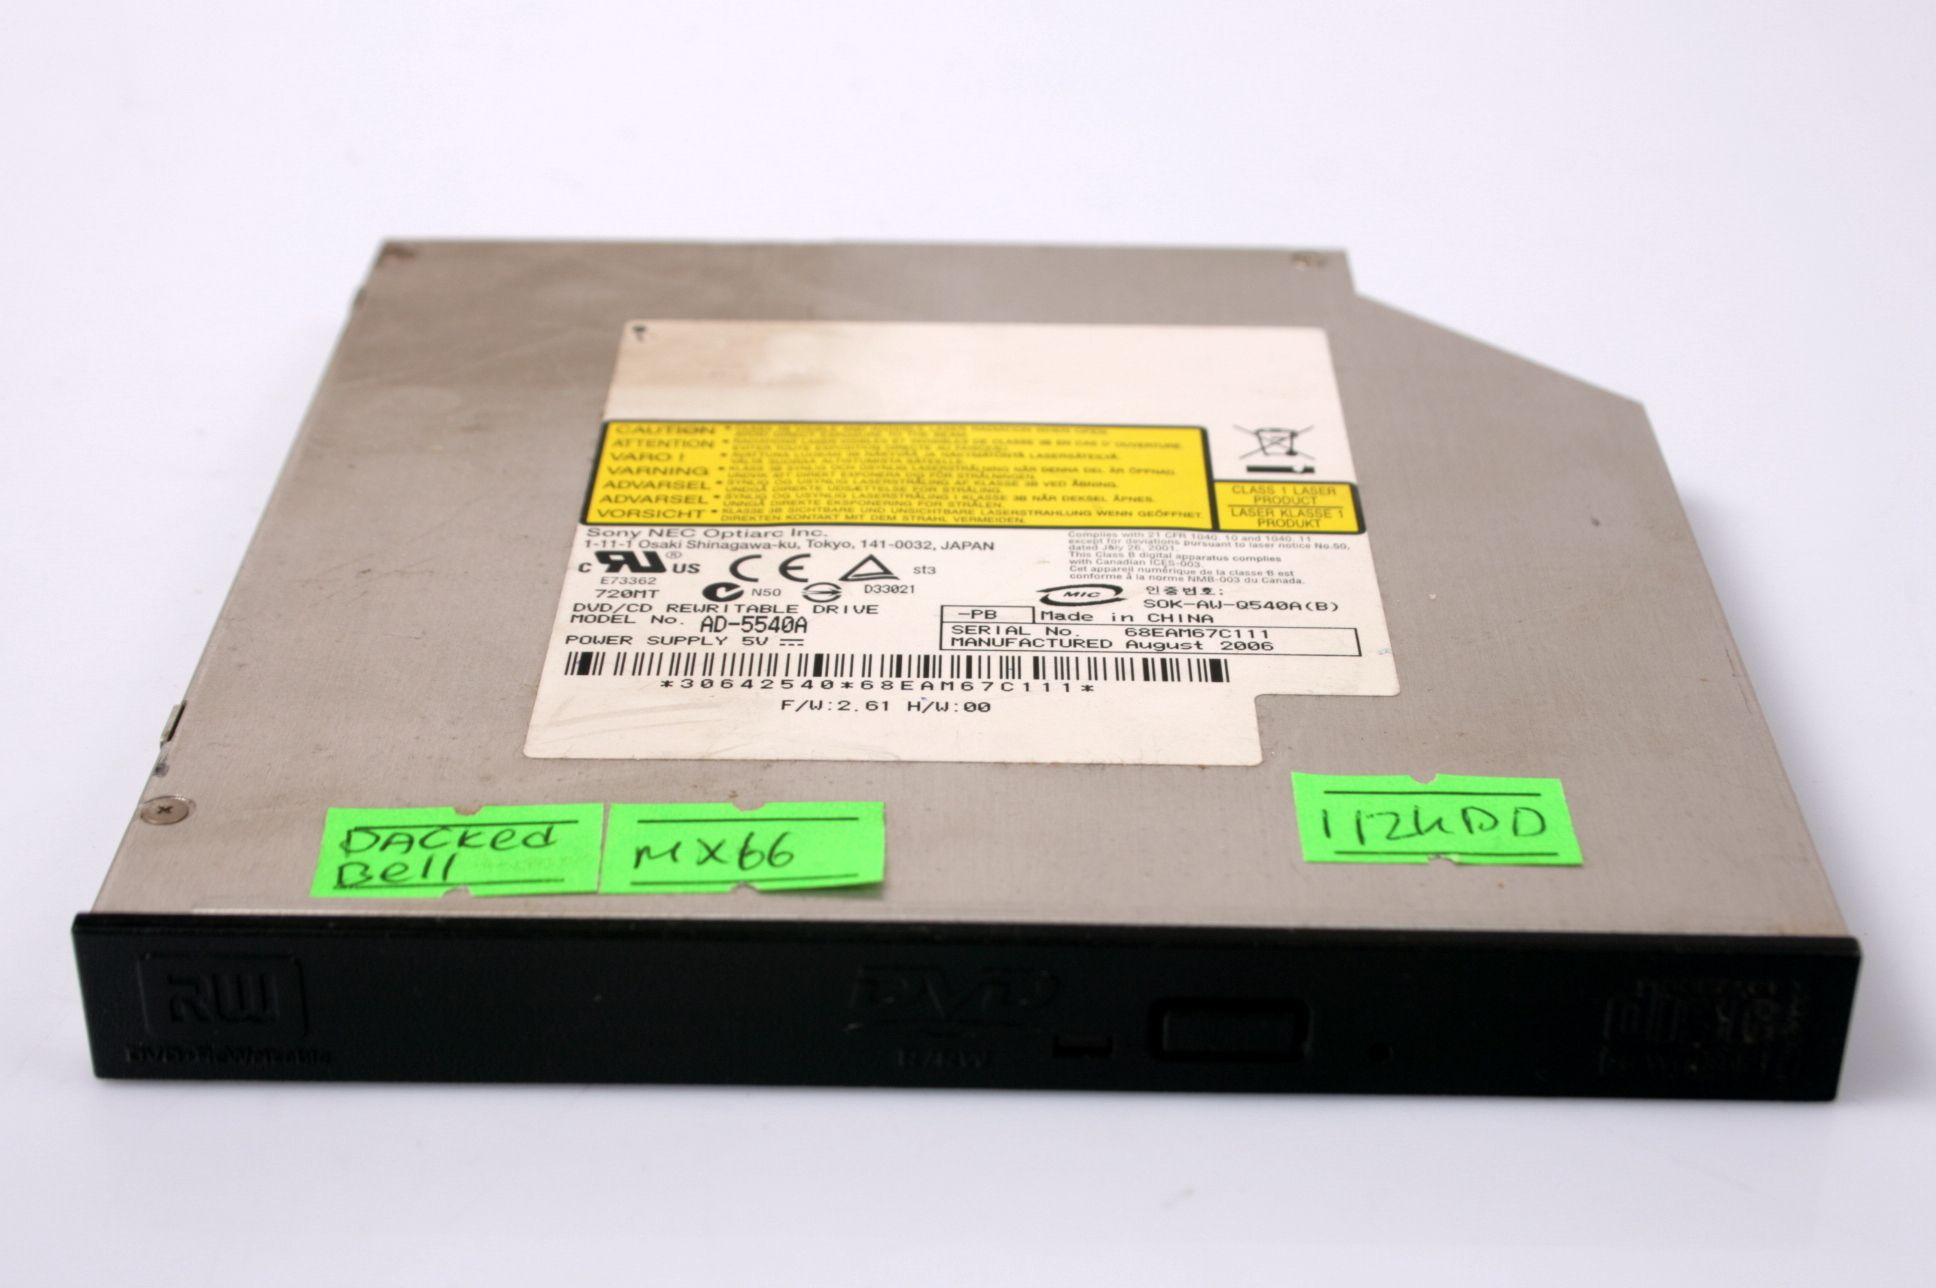 Packard Bell EasyNote MX66 DVD/RW Combo Drive AD-5540A